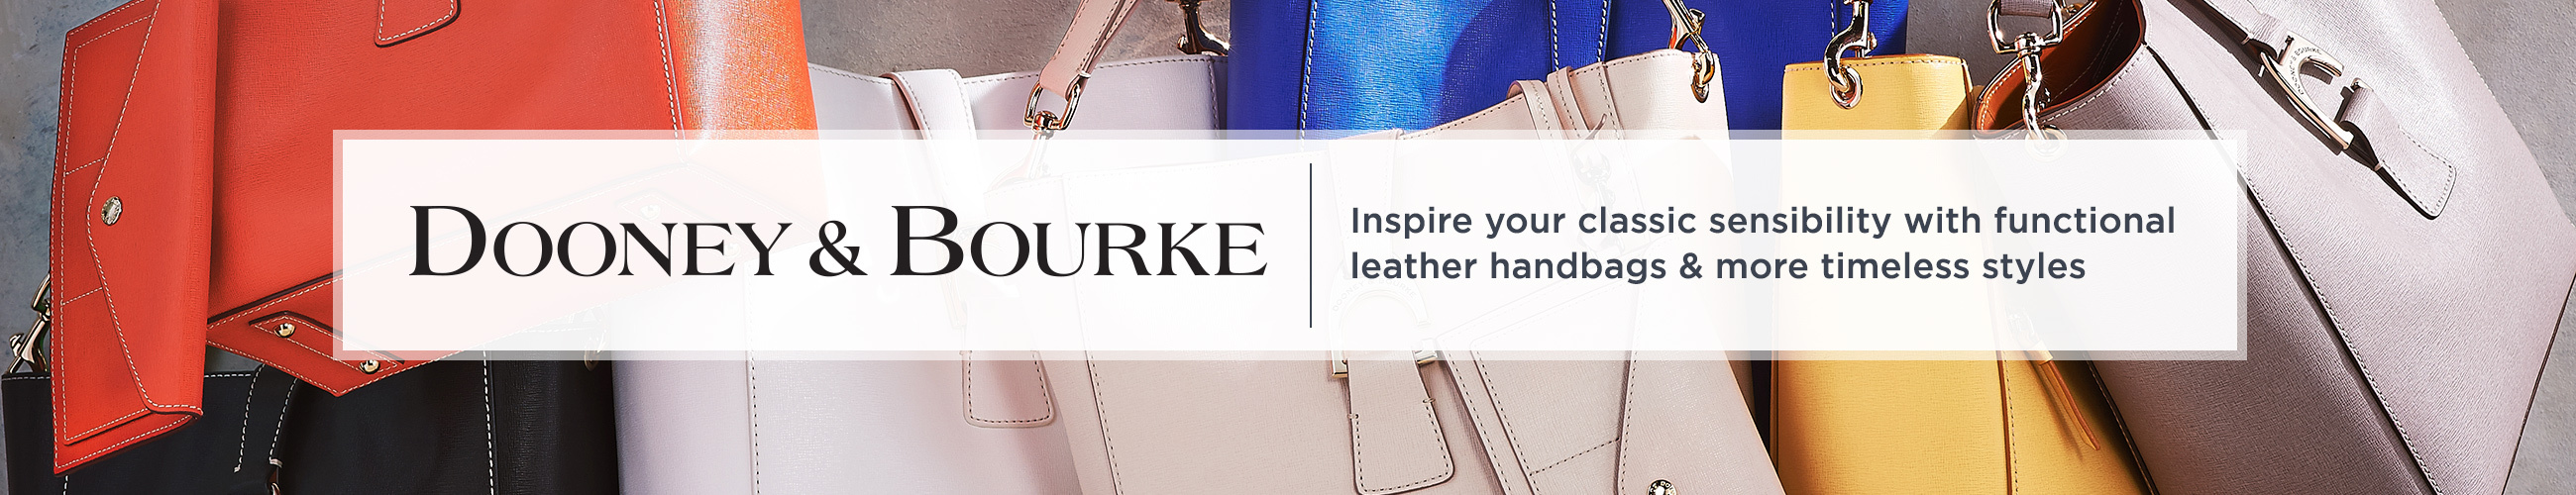 Dooney Bourke Inspire Your Classic Sensibility With Functional Leather Handbags More Timeless Styles